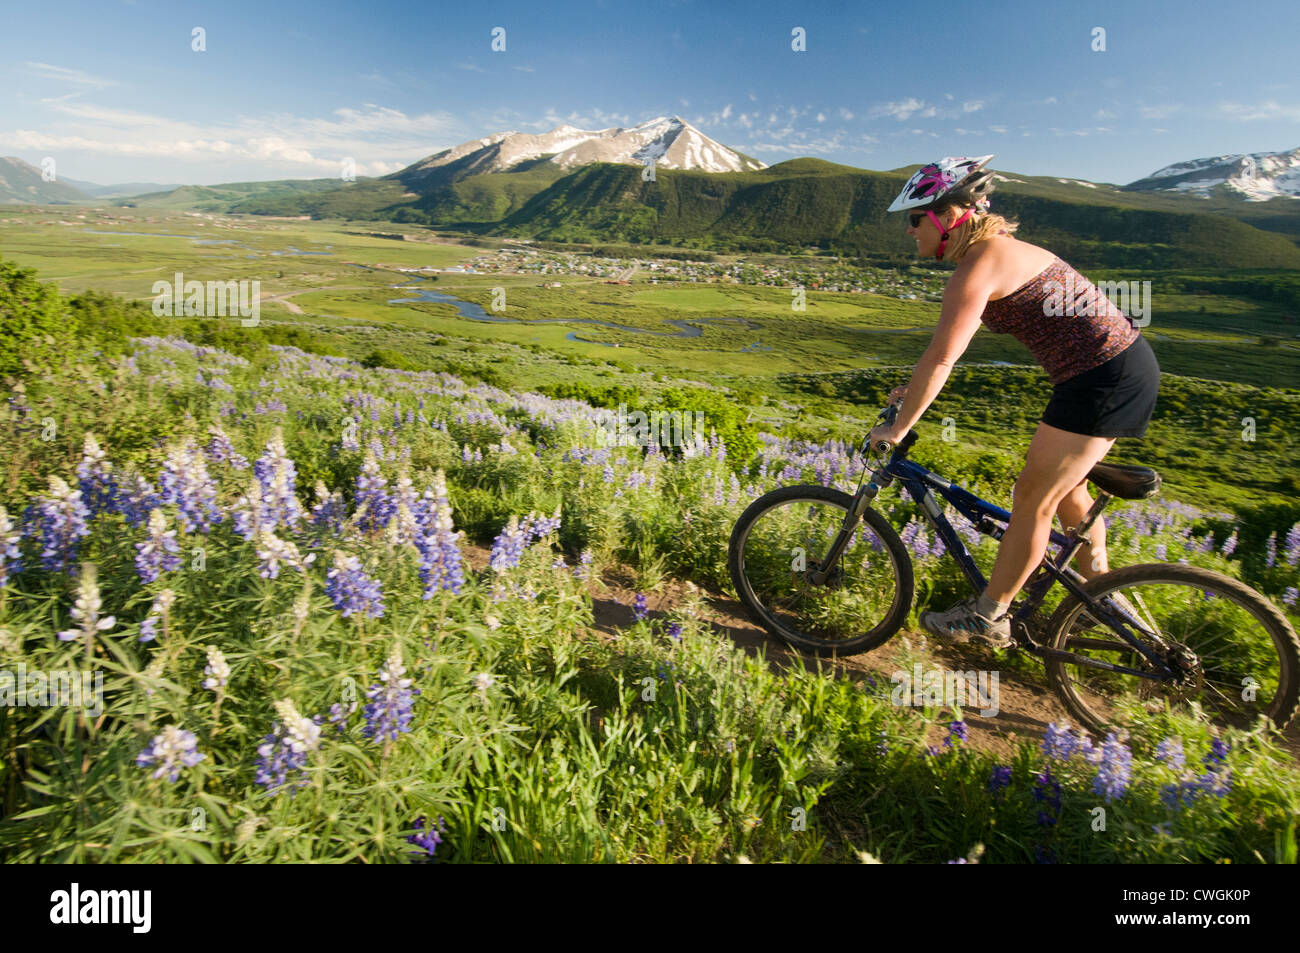 A woman mountain biking past wildflowers in Crested Butte, Colorado. - Stock Image